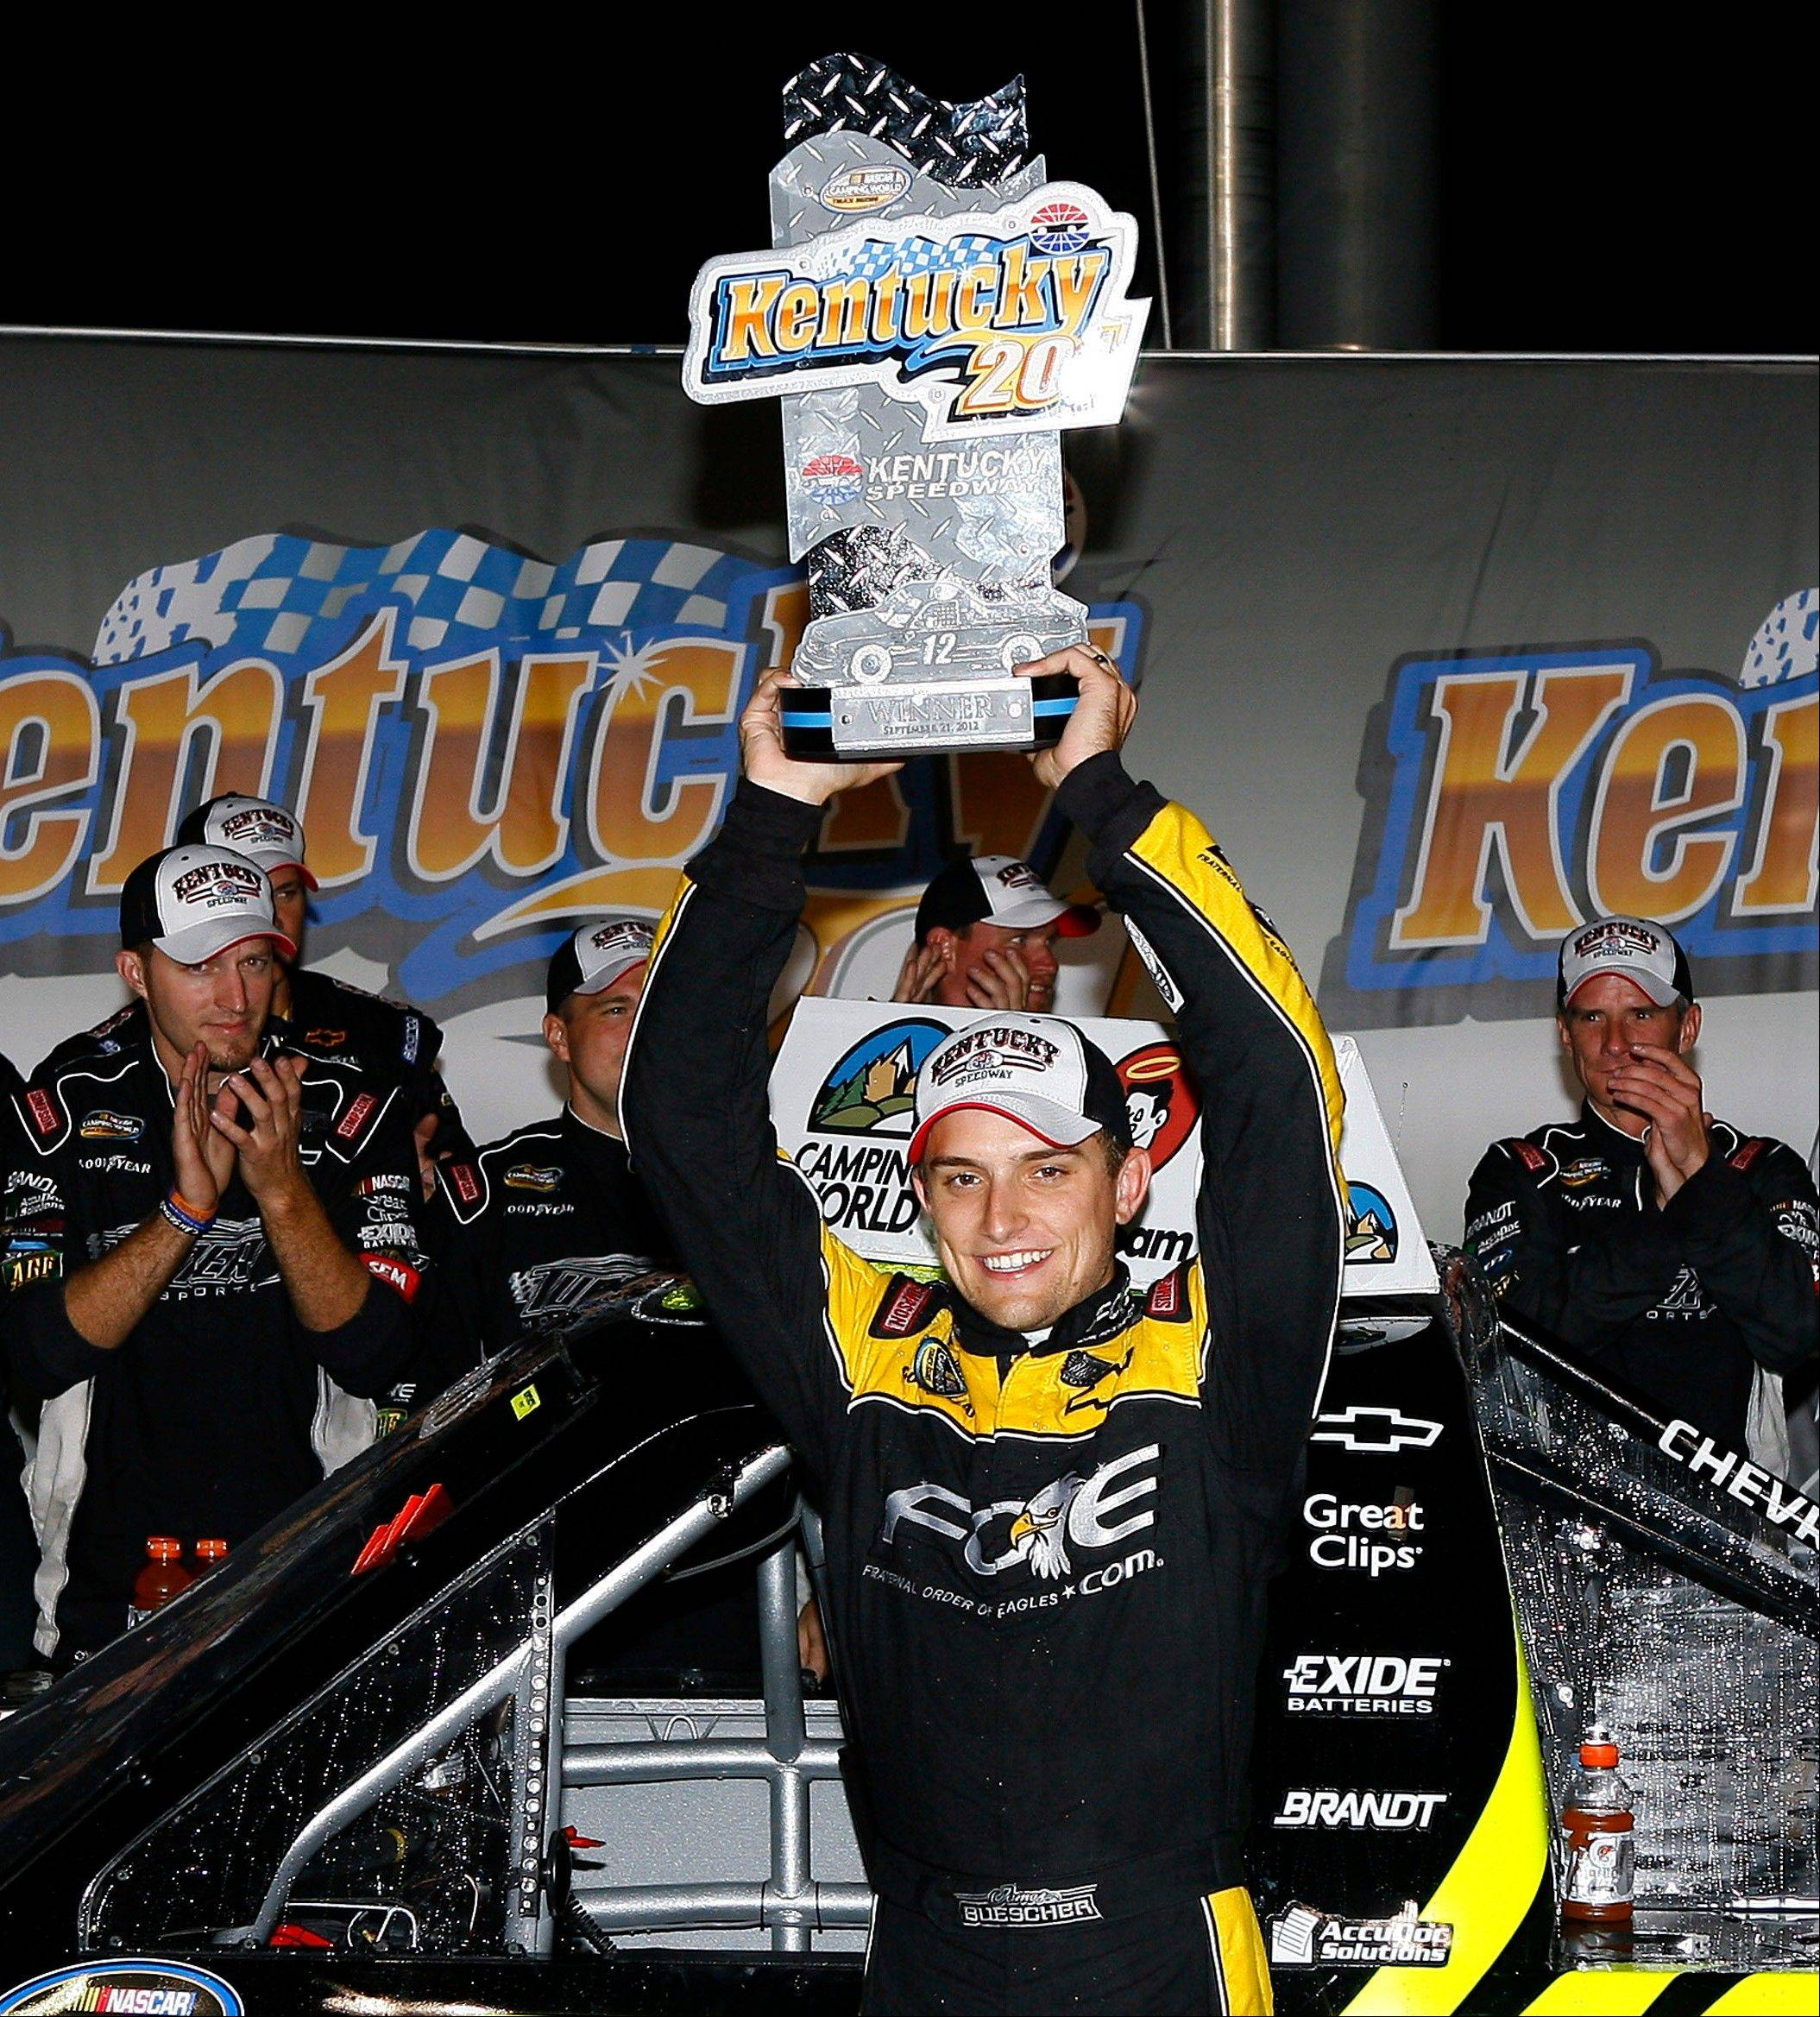 James Buescher hoists the trophy after winning the NASCAR Truck Series auto race at Kentucky Speedway on Friday in Sparta, Ky.